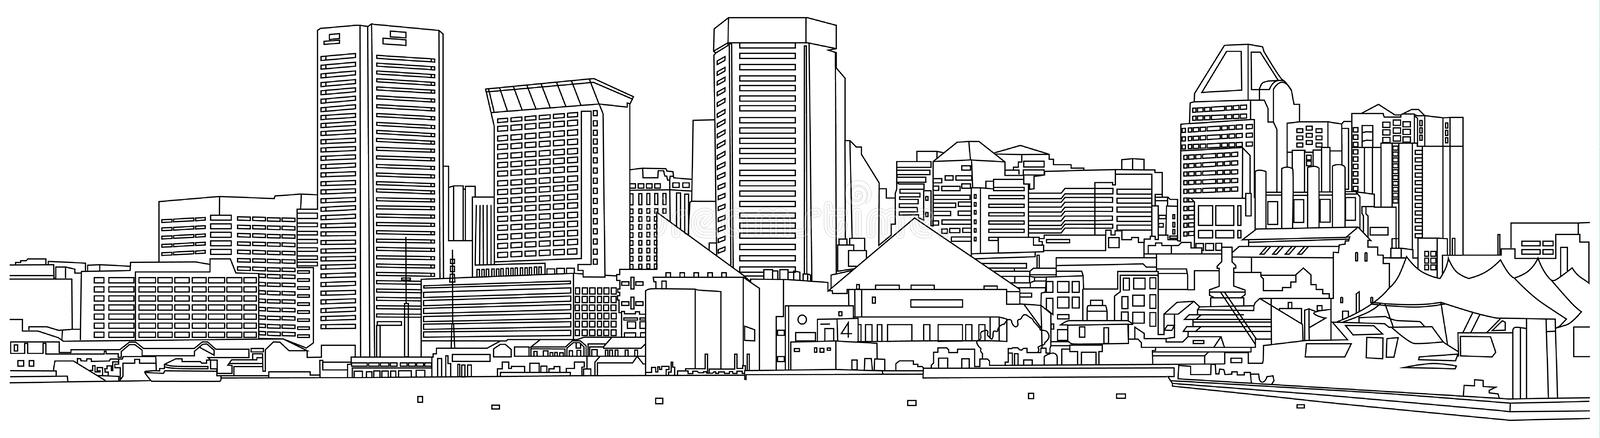 Baltimore-skyline-sketch stock illustration